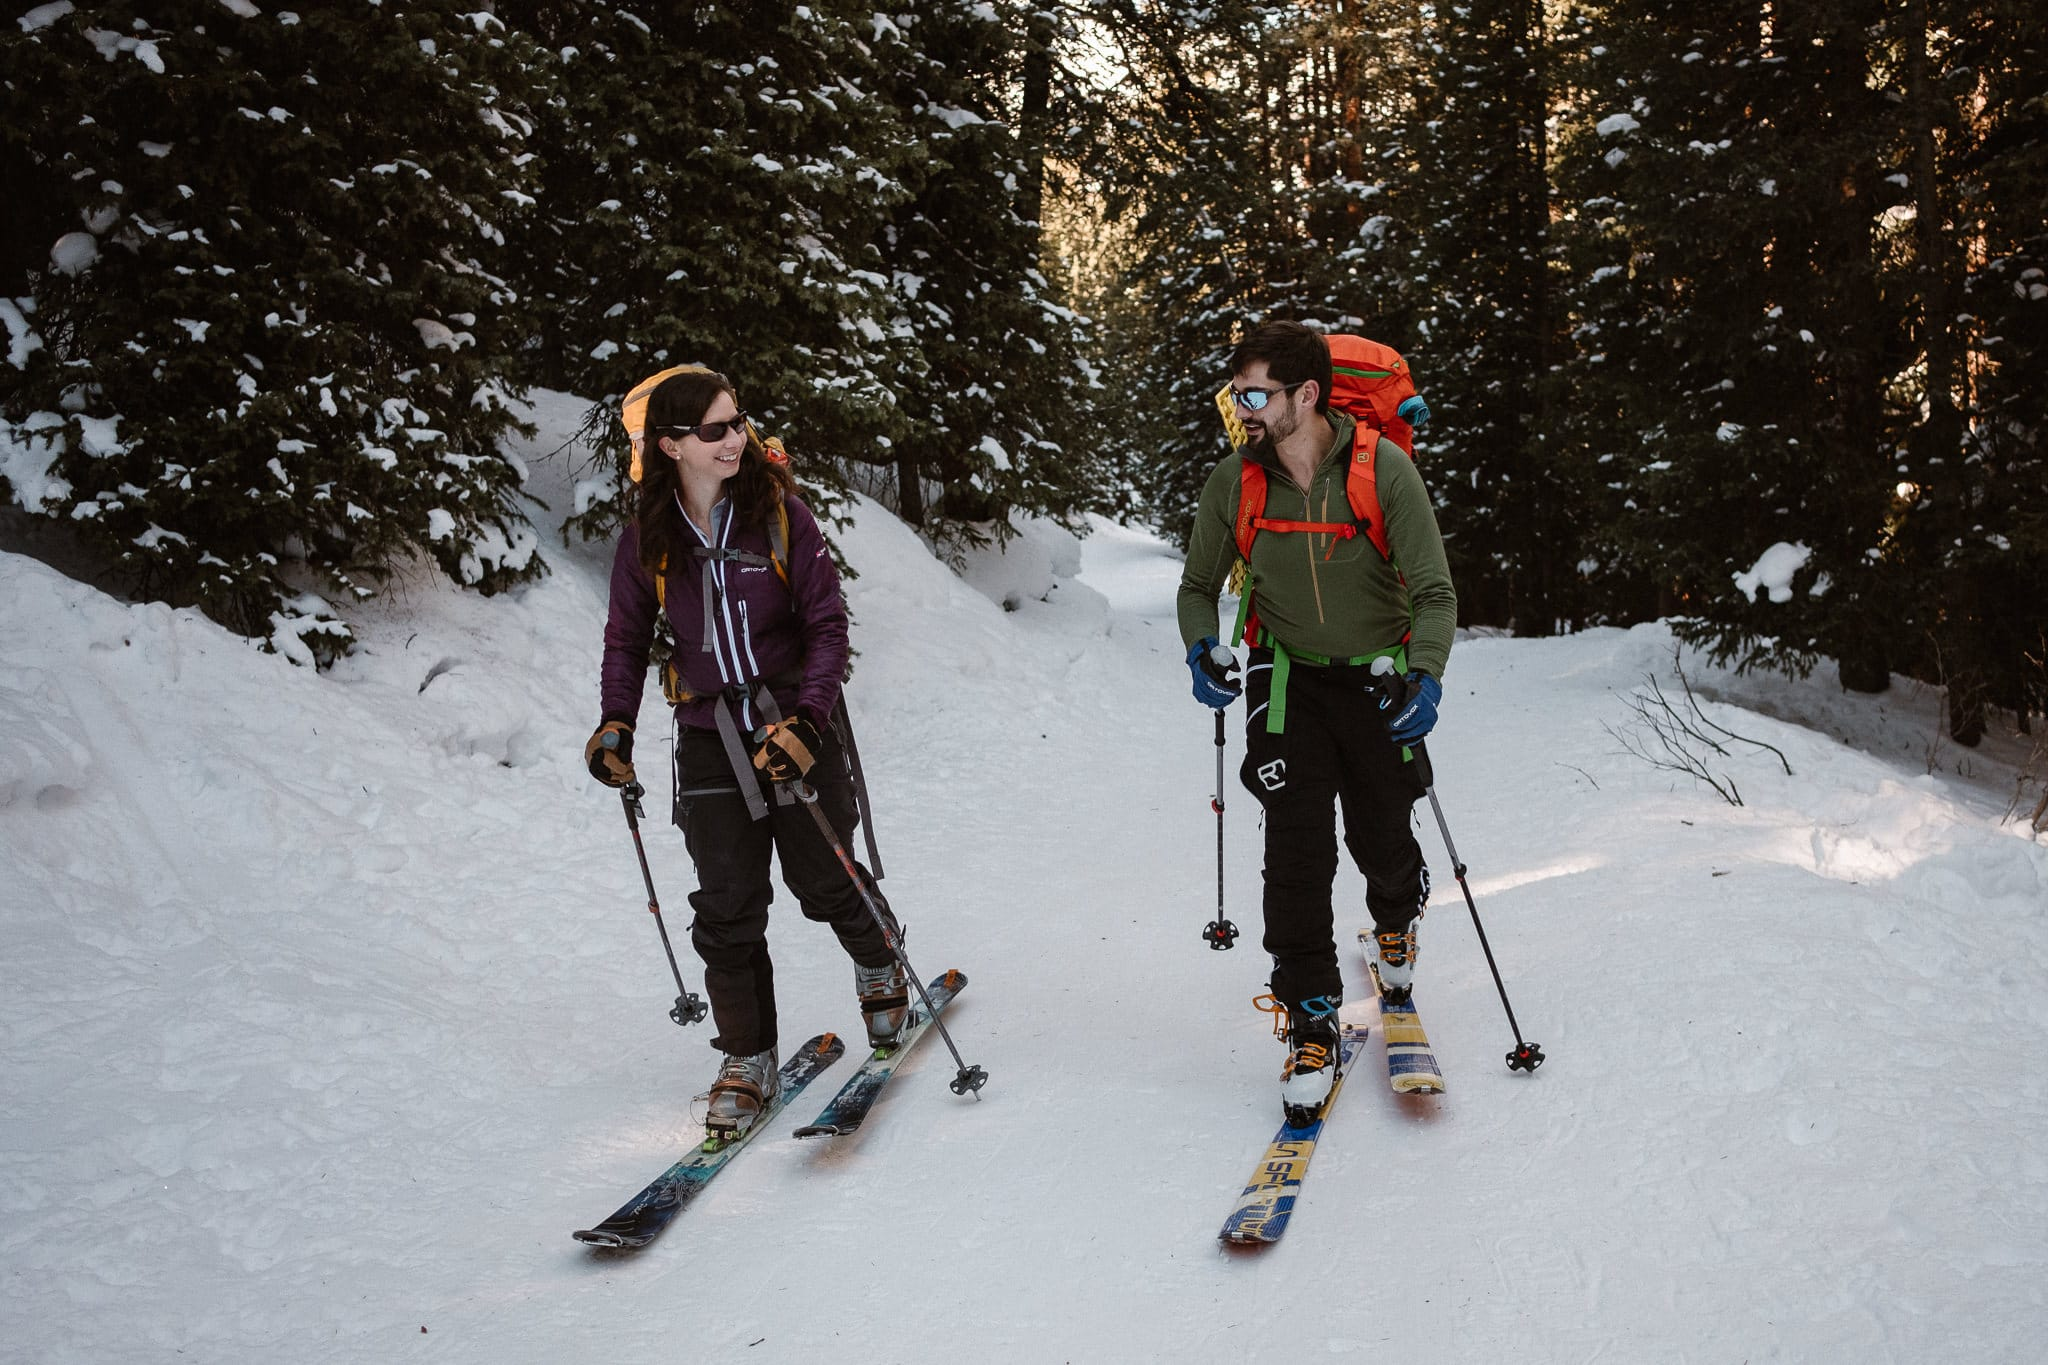 Bride and groom skinning up snow-covered trail, backcountry skiing elopement in Colorado